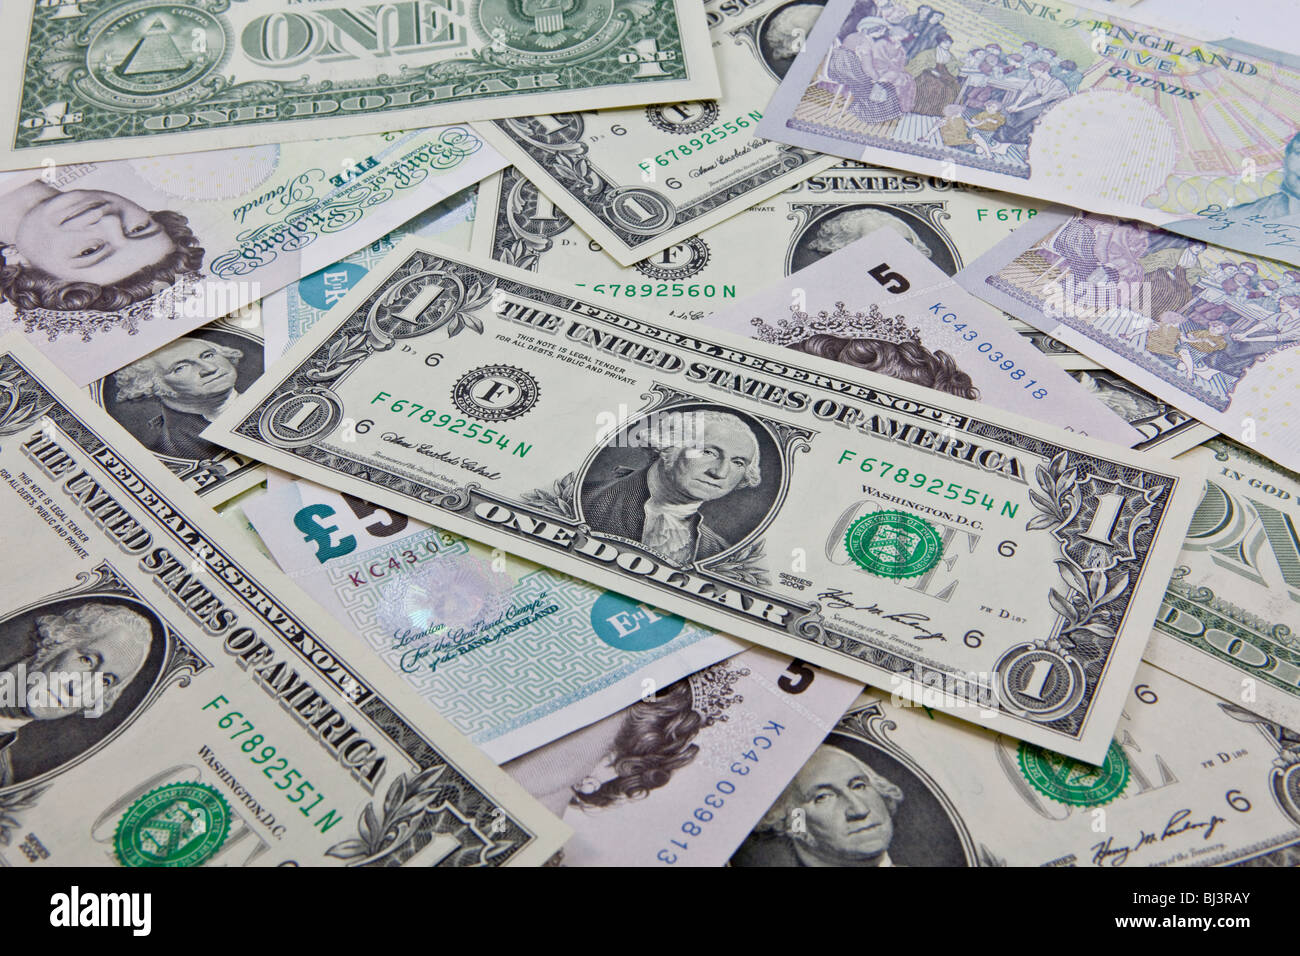 A mixture of bank notes, U.S. dollar and British pounds - Stock Image